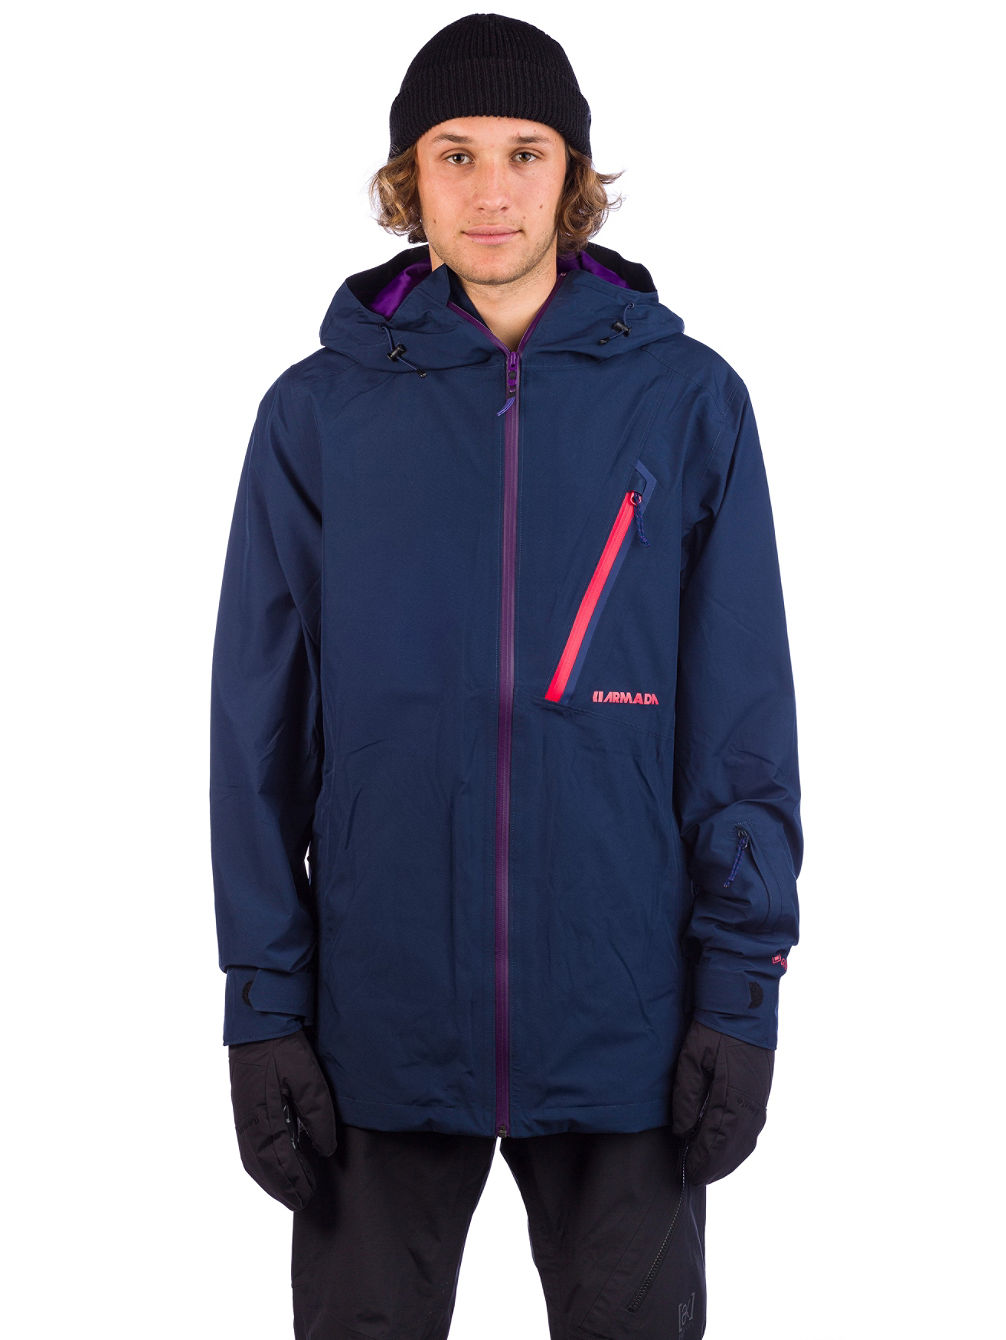 Chapter Gore-Tex Jacket